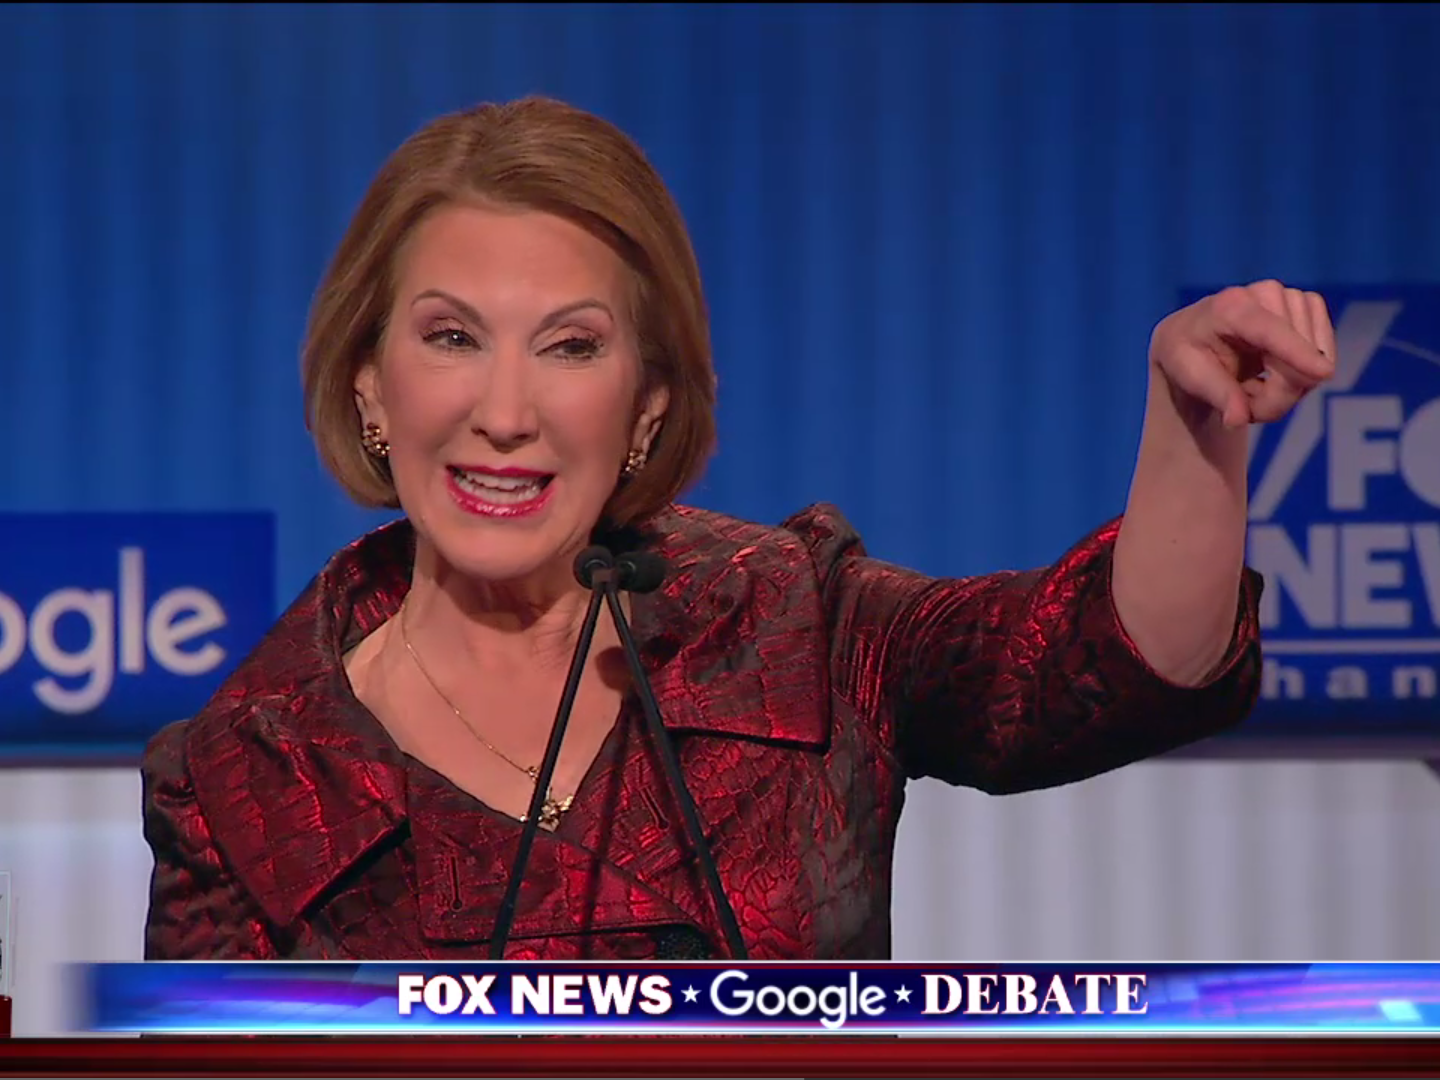 Carly Fiorina unleashes a litany of zingers against Hillary Clinton at Fox News debate